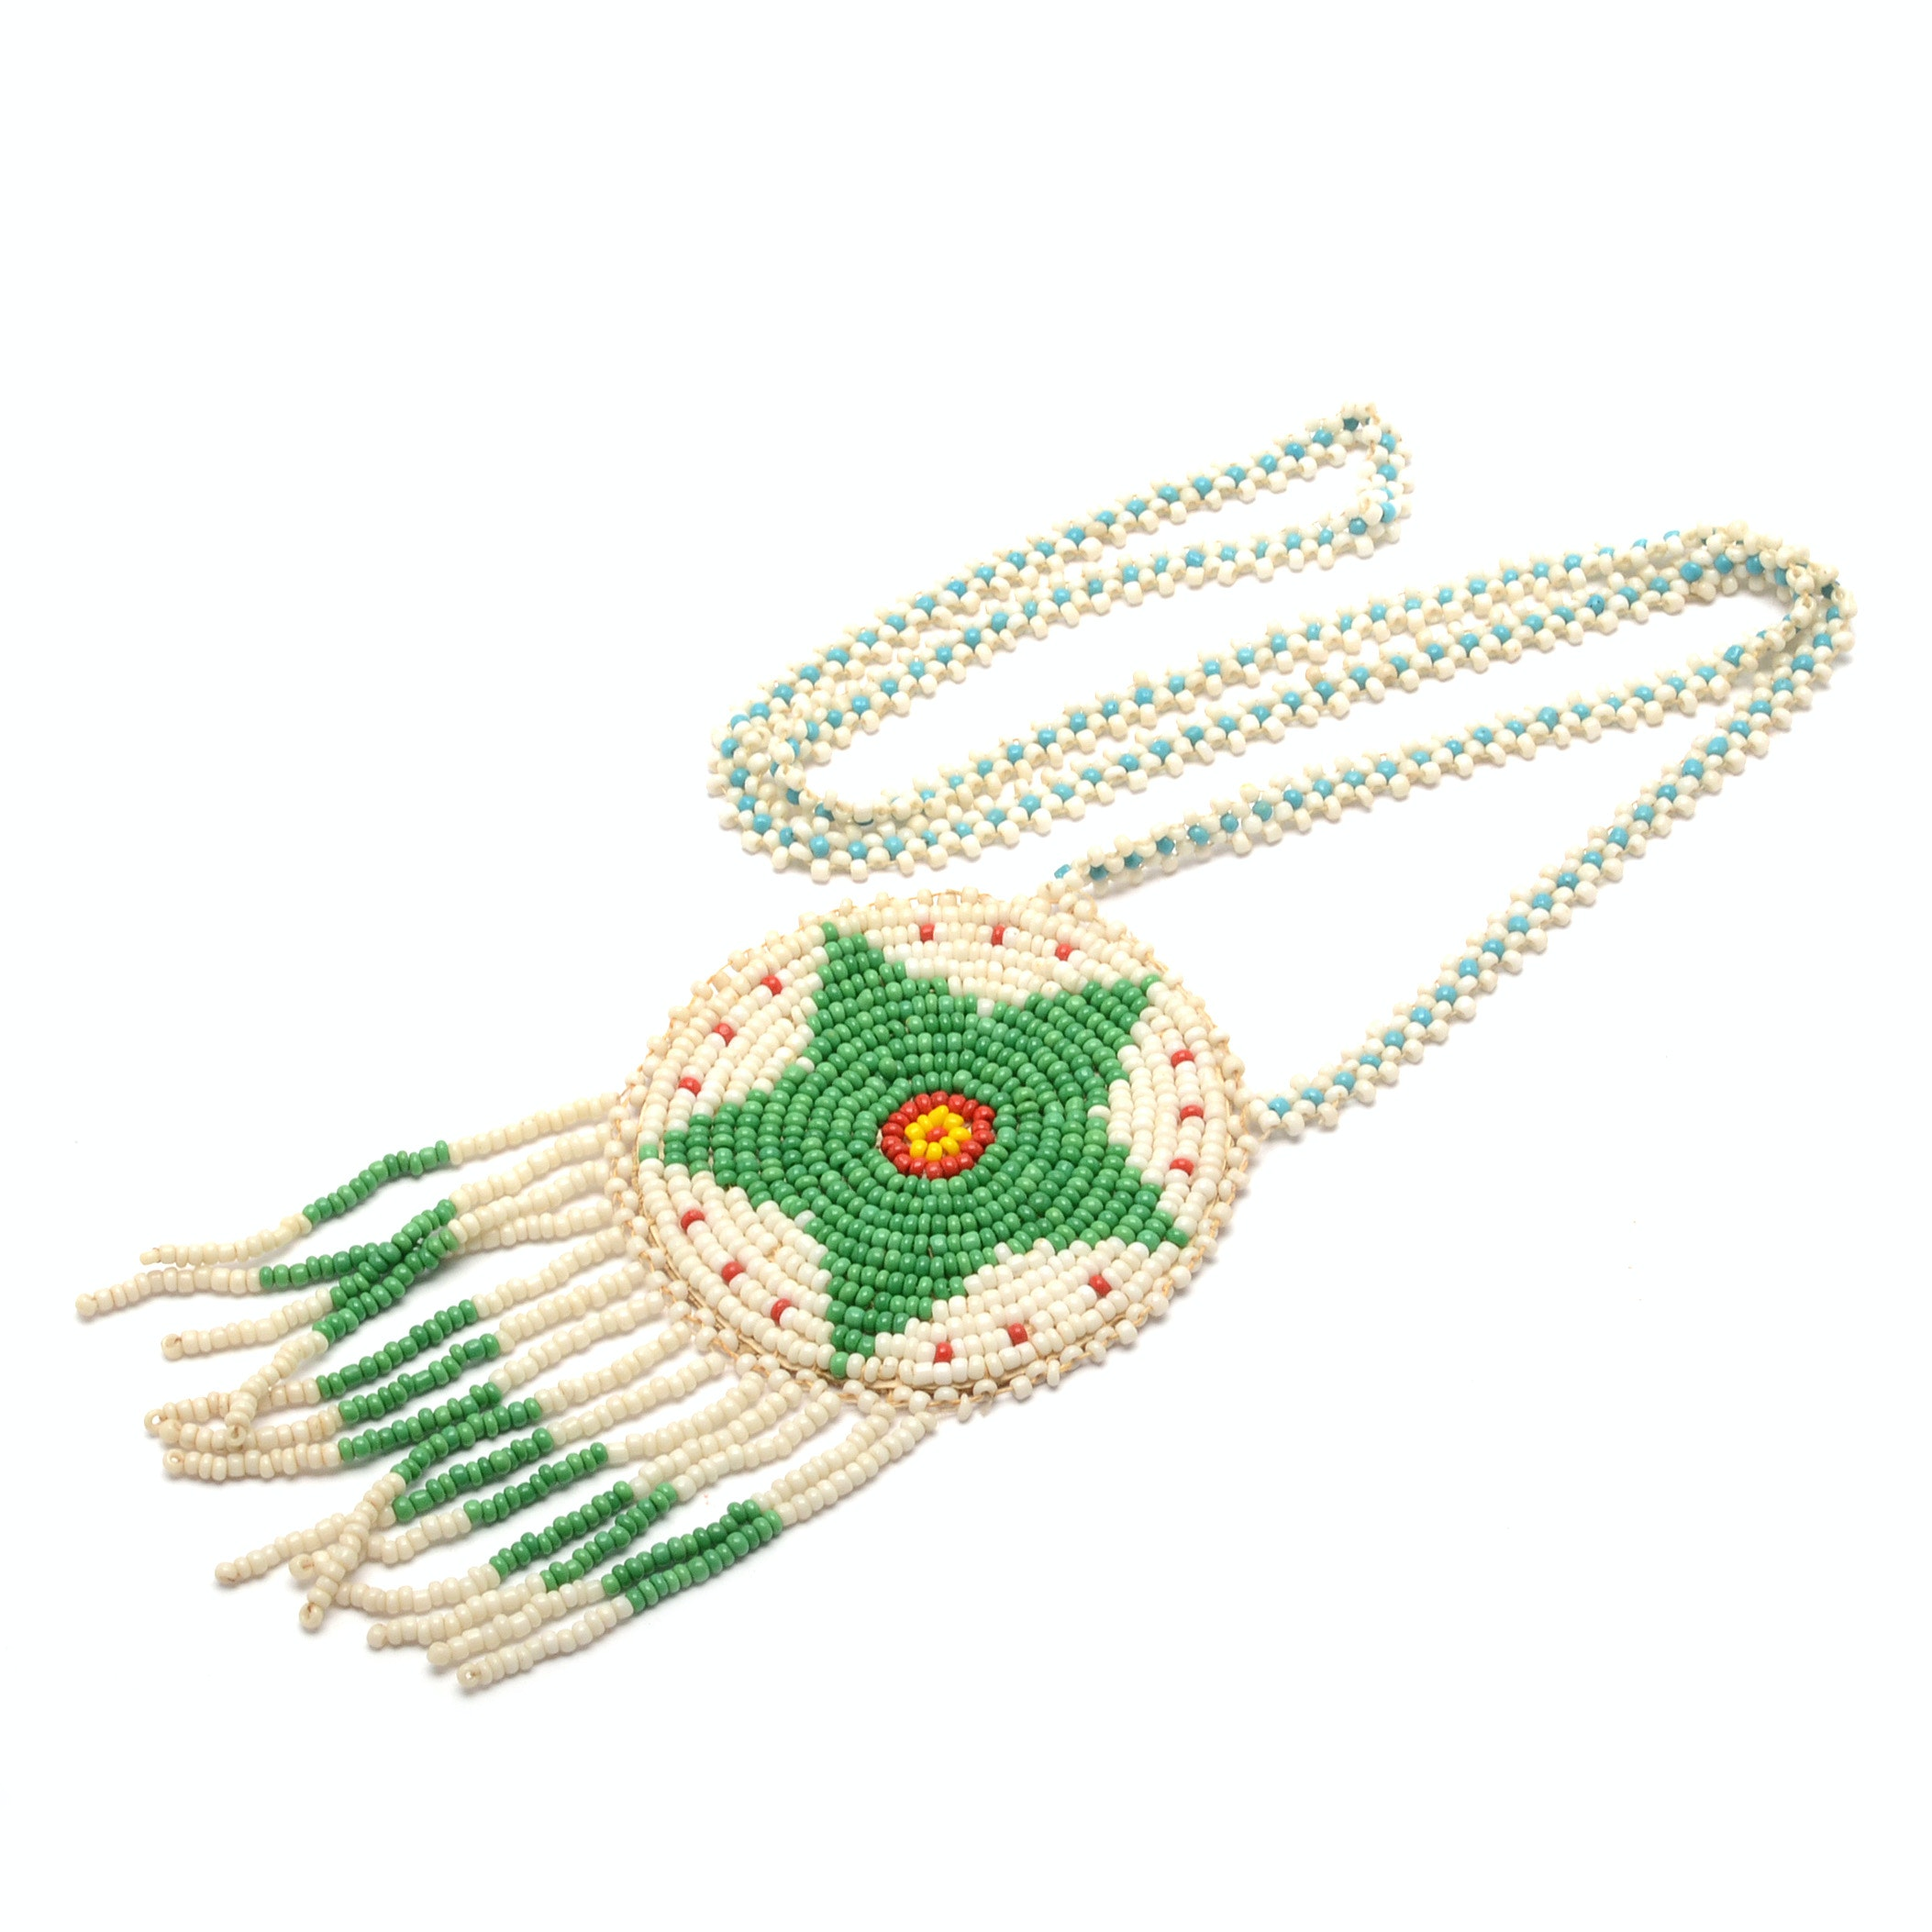 Southwest Style Seed Bead Necklace